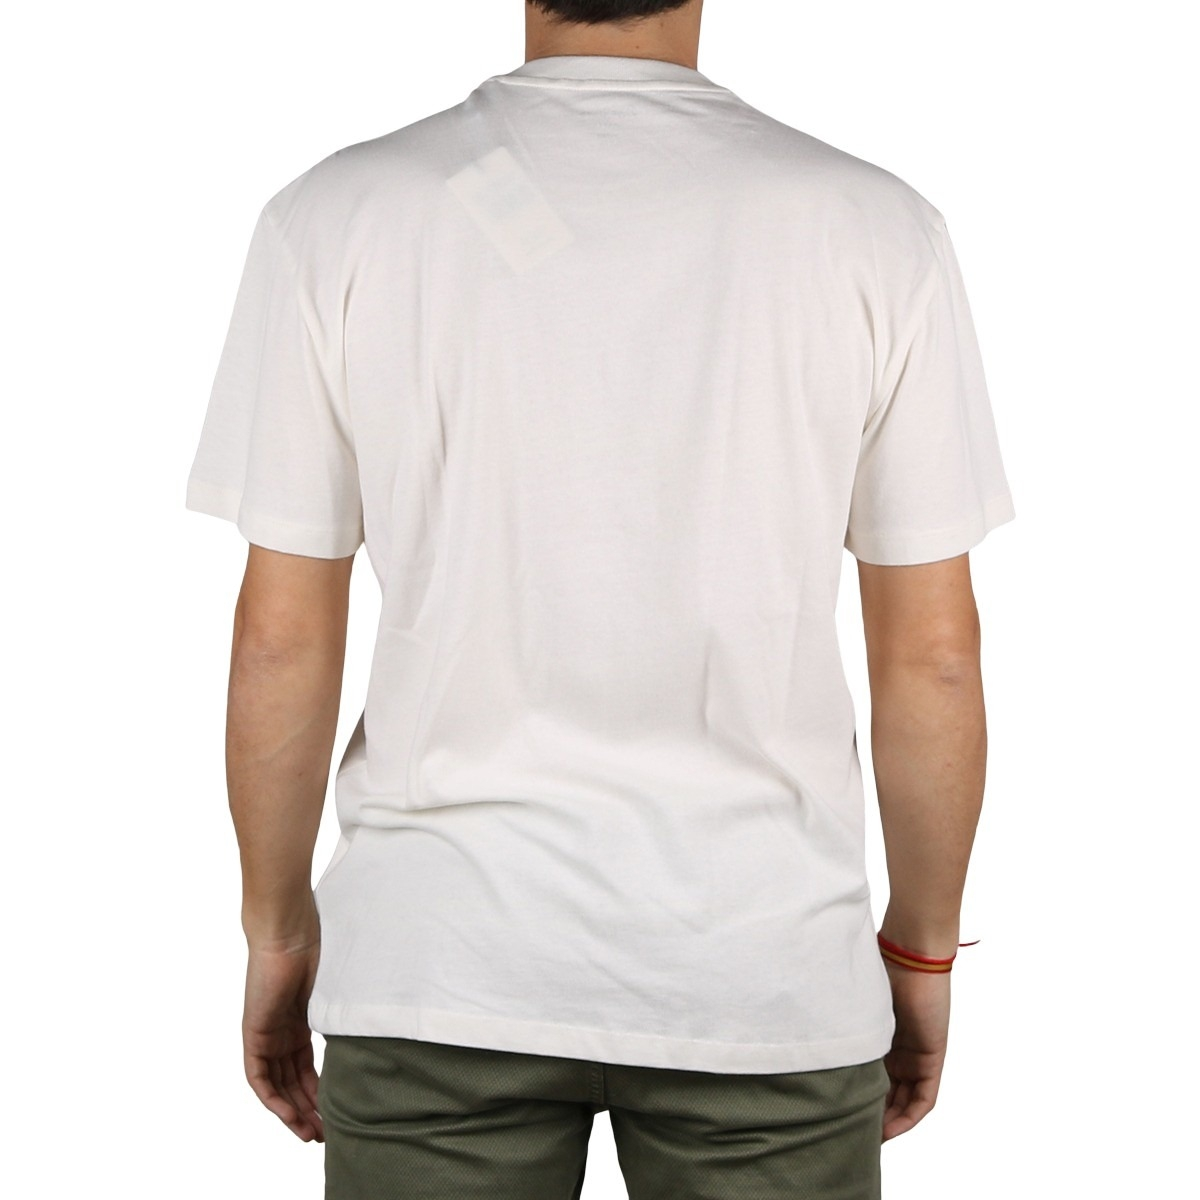 Pepe Jeans Camiseta Bolton Mousse Blanco Roto Hombre